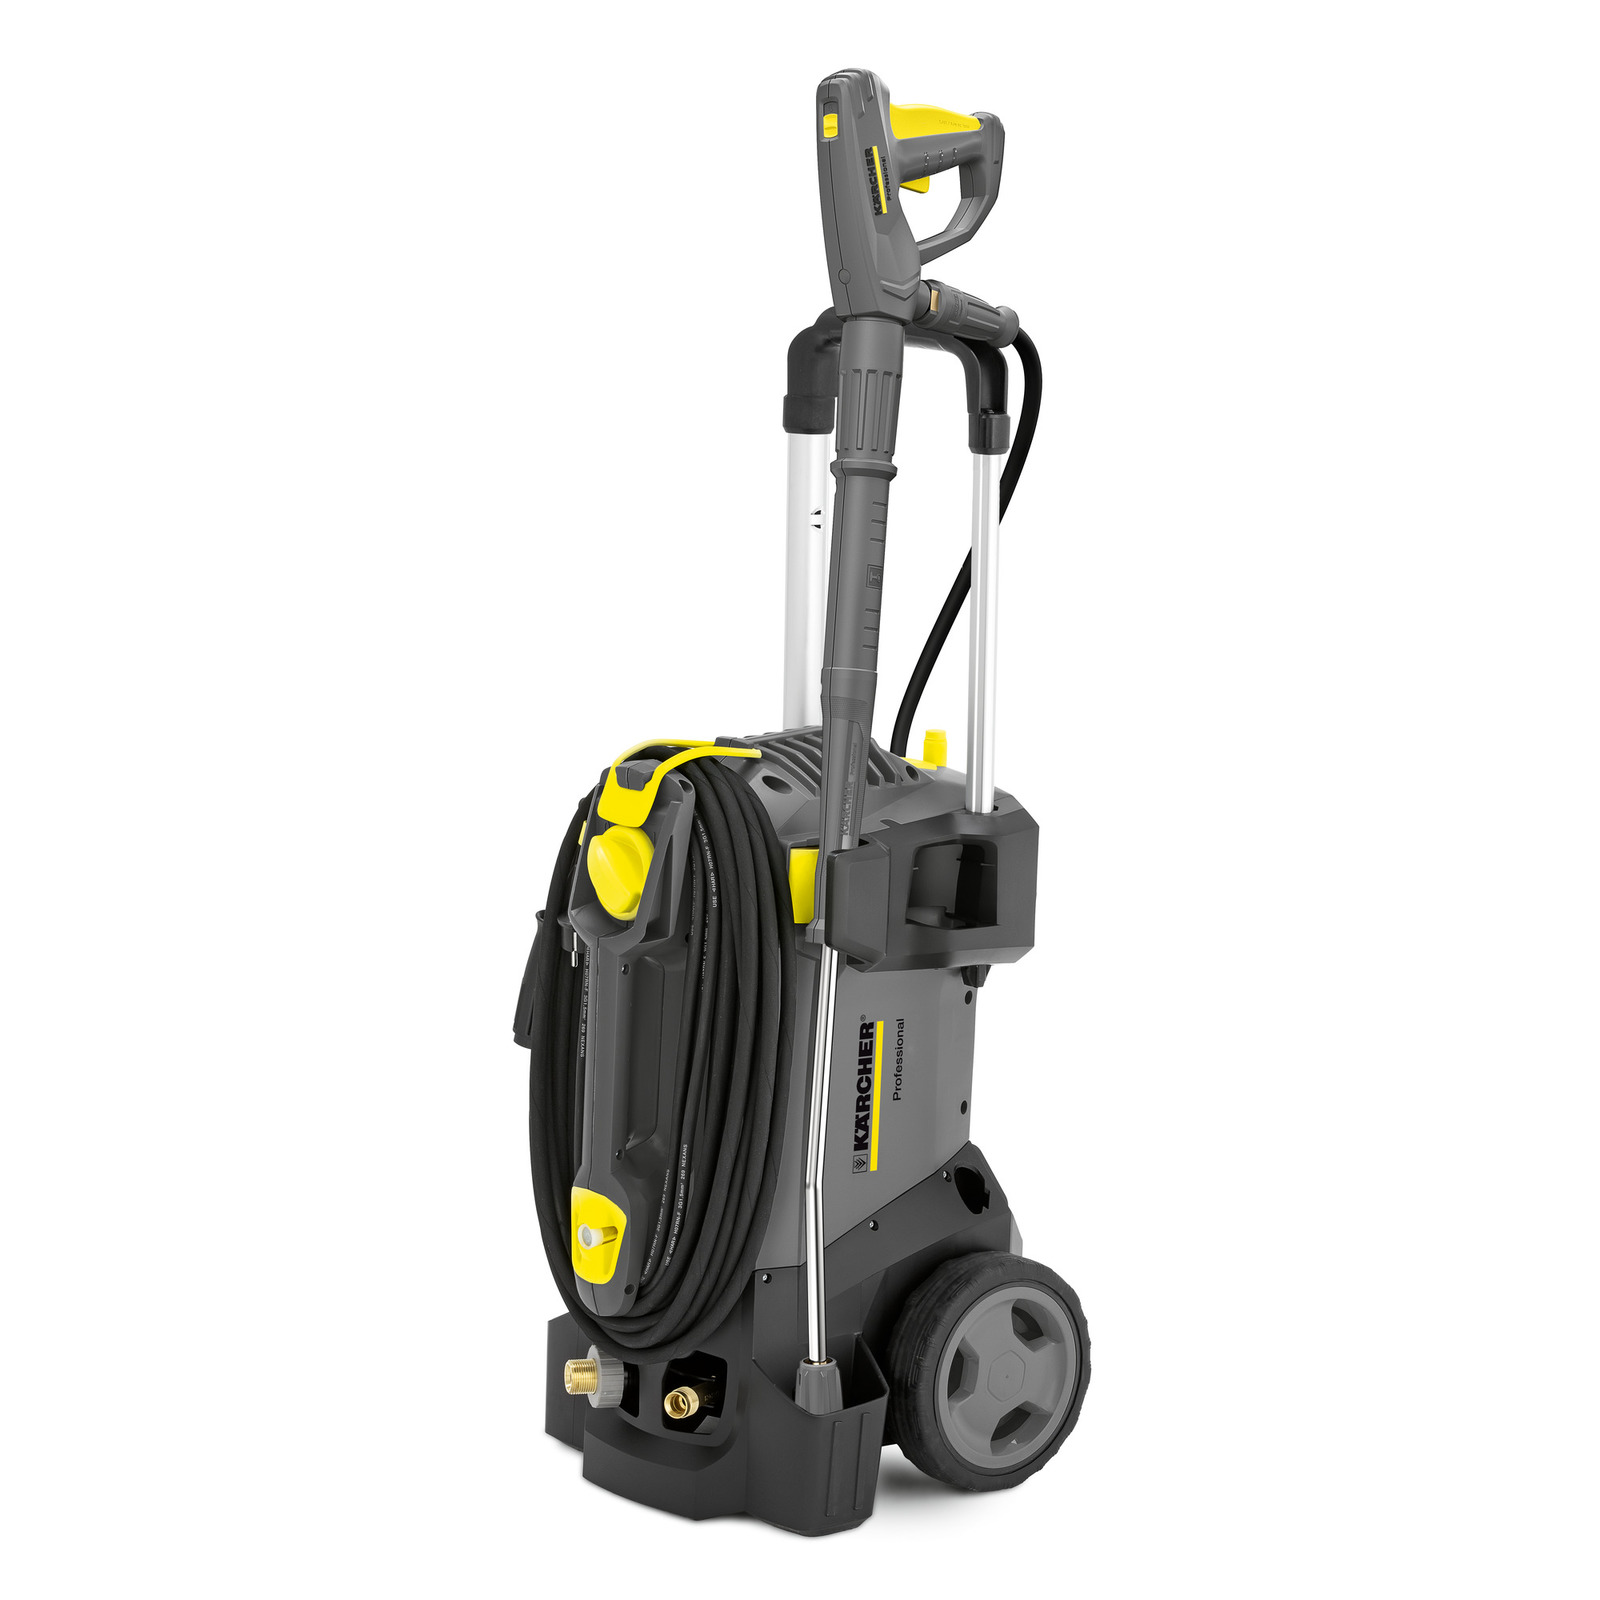 Karcher High Pressure Cold Water Cleaners - Single phase / 50 Hz - HD 5/12 C Plus